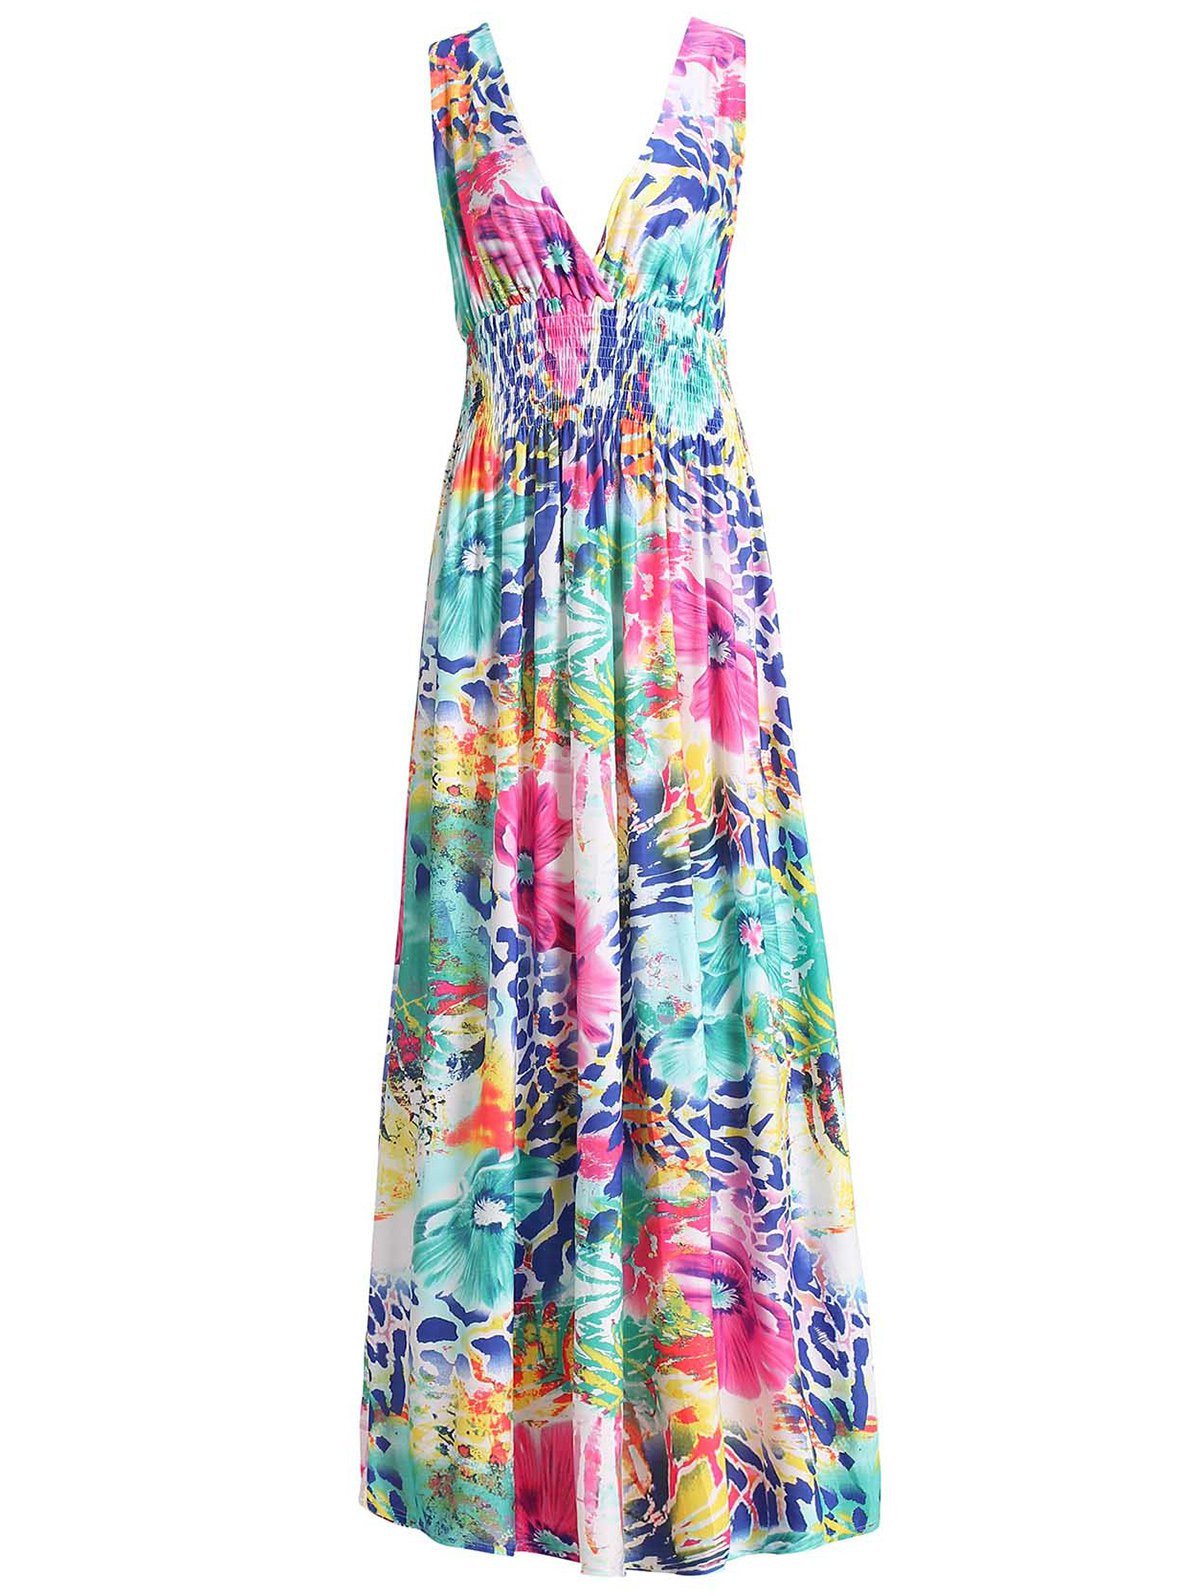 Sexy Colorful Floral Print Plunging Neck Sleeveless Dress For Women